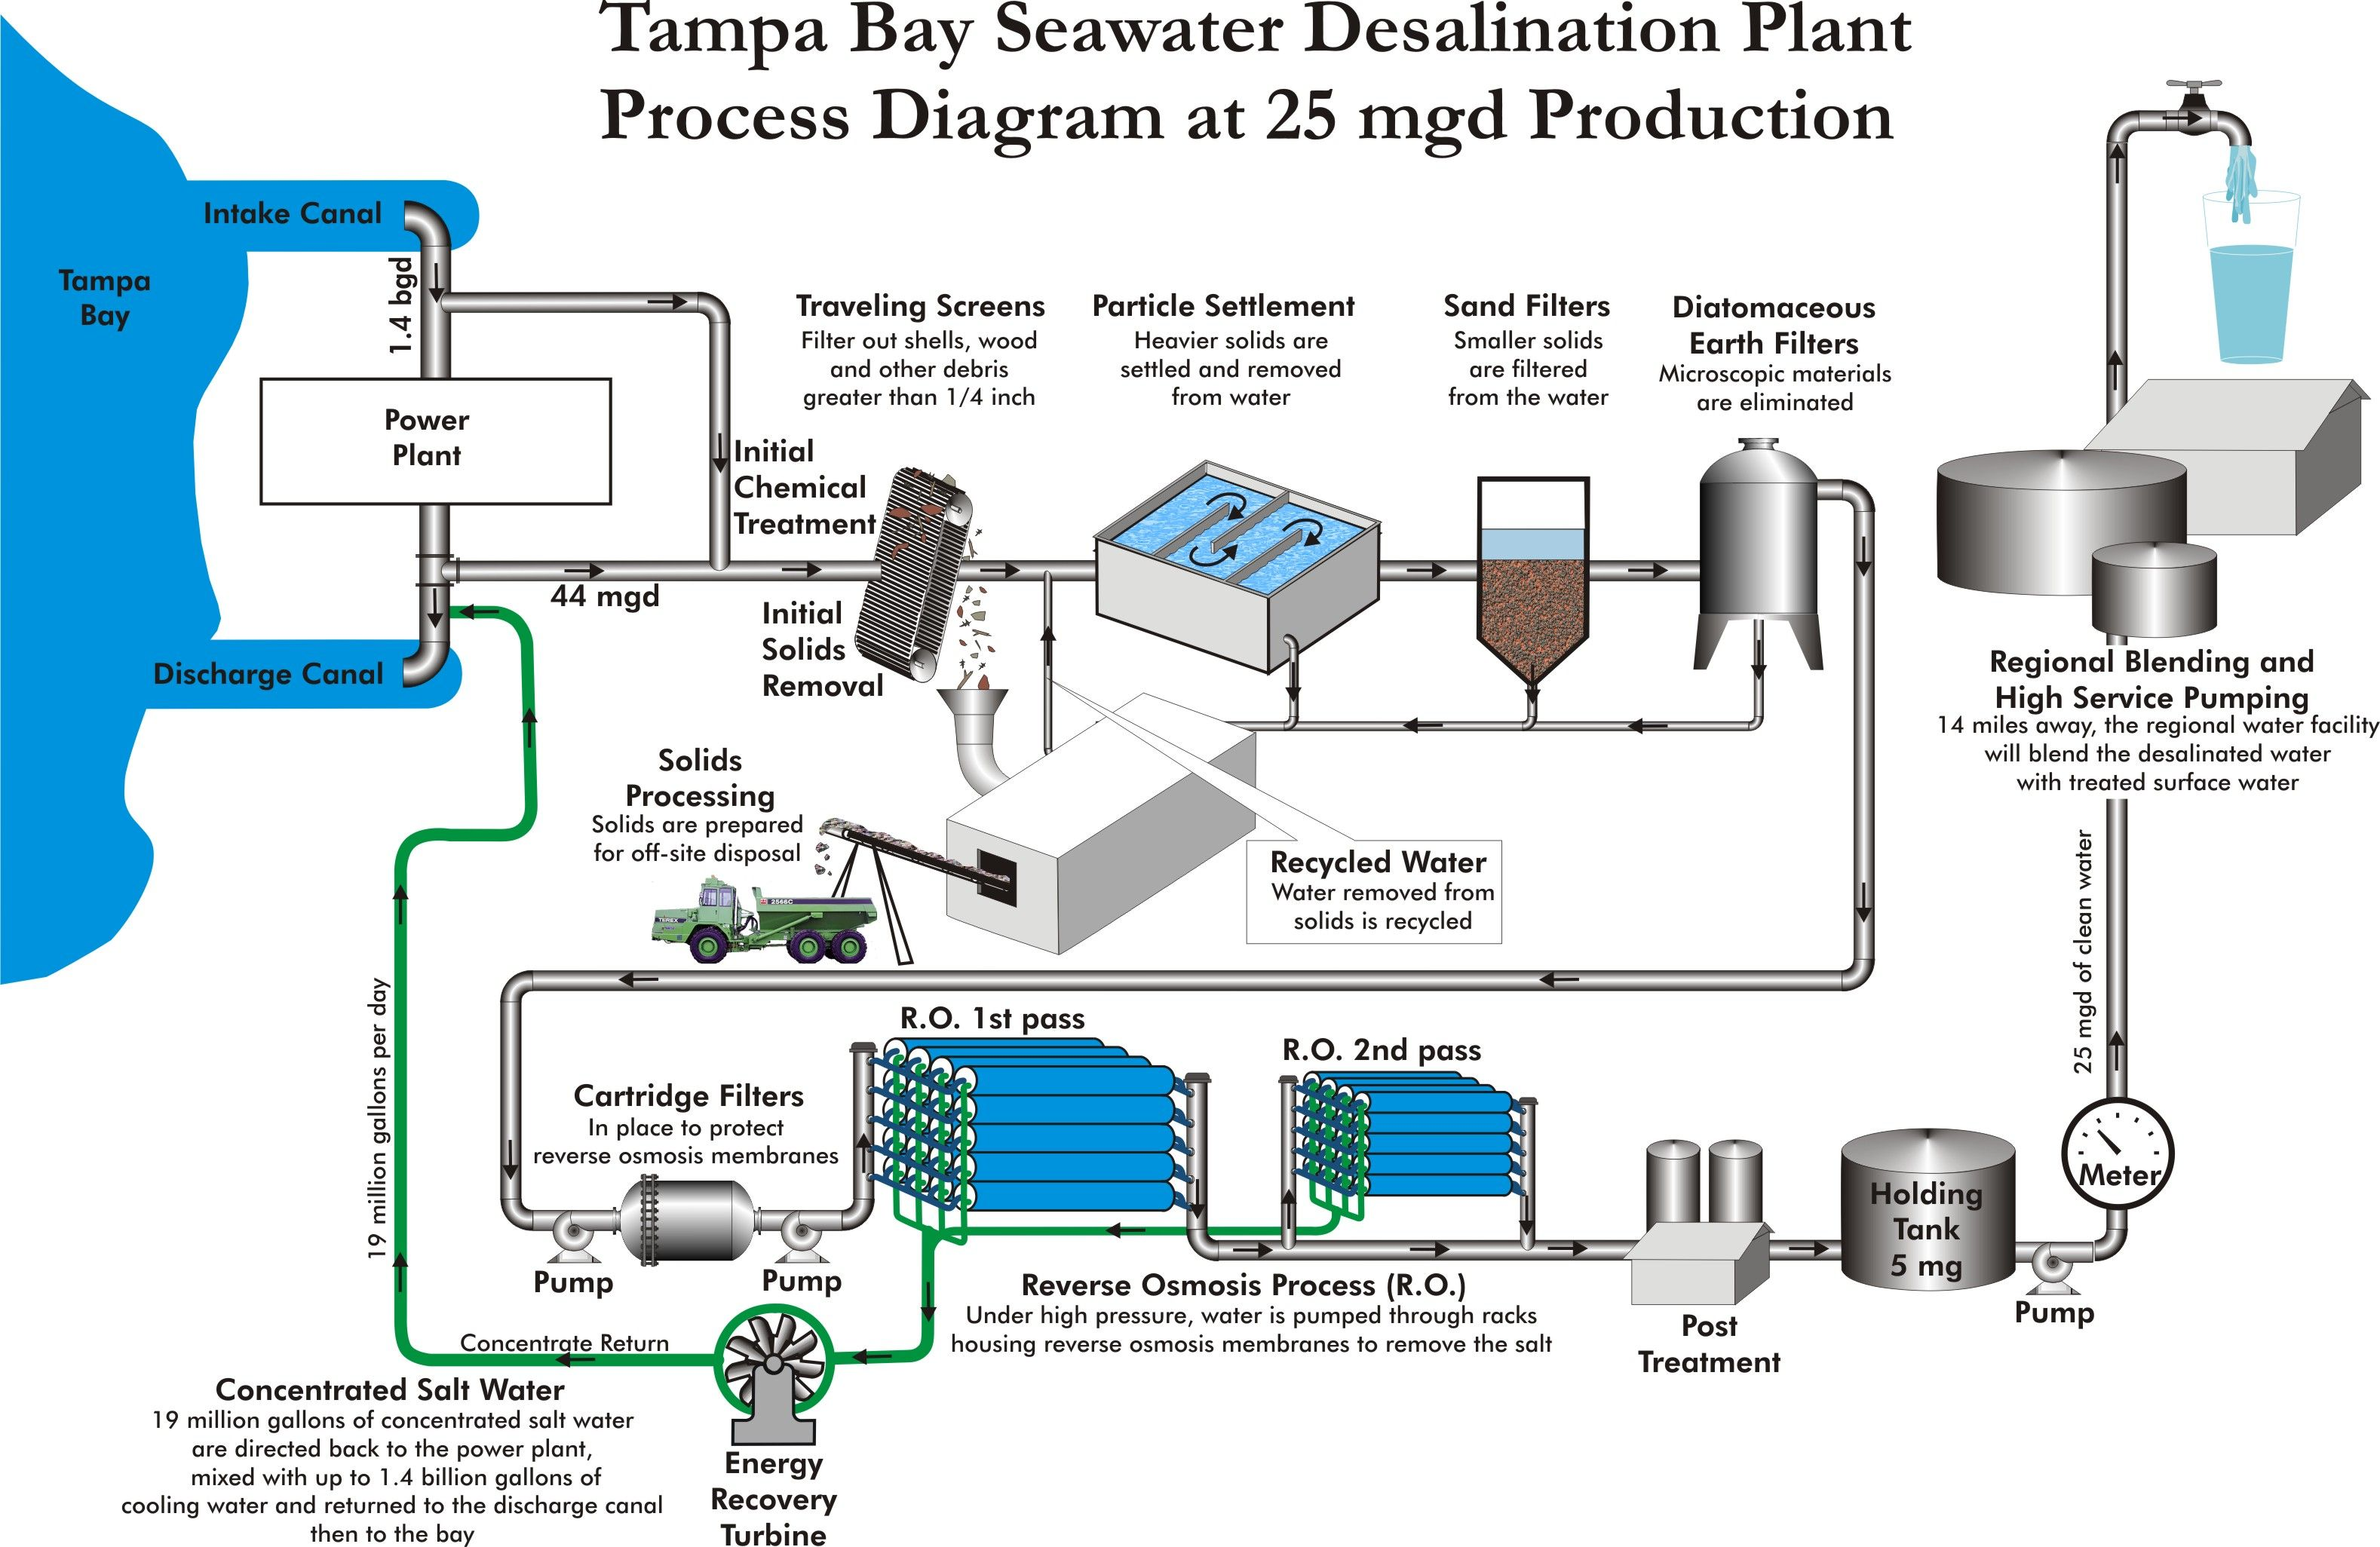 Tampa Bay Seawater Desalination Plant Flow Diagram